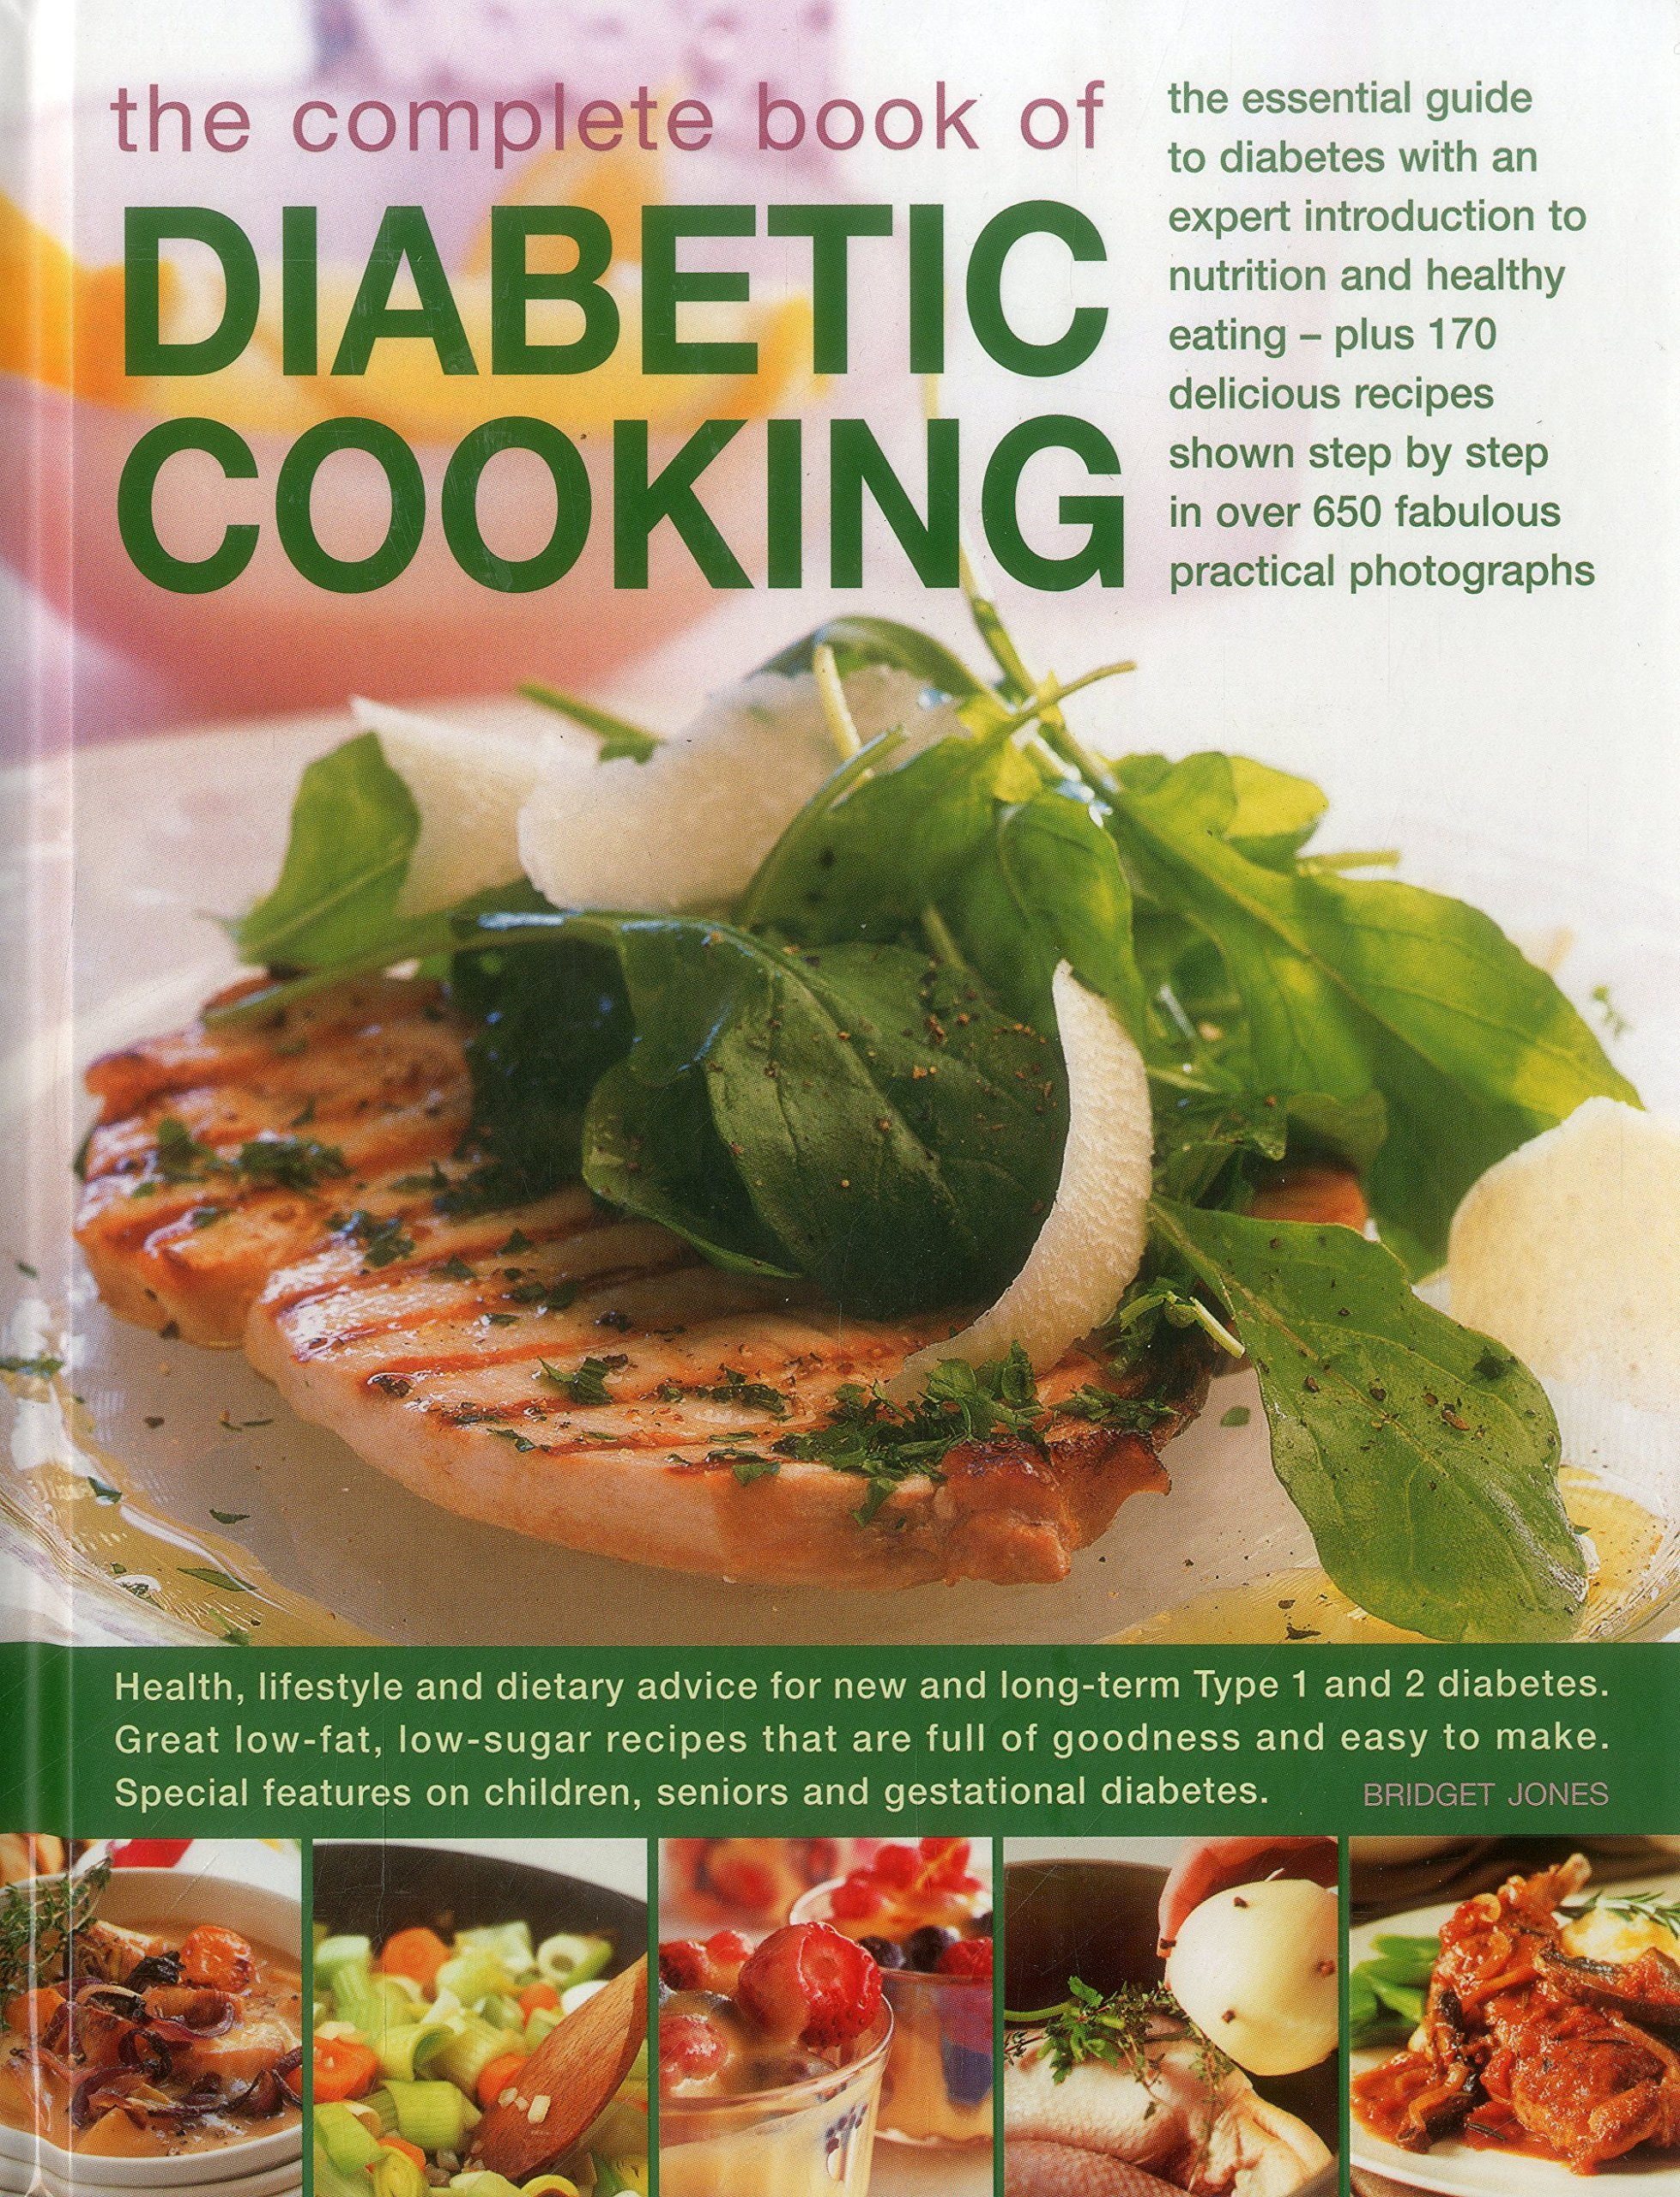 Download The Complete Book of Diabetic Cooking: The Essential Guide To Diabetes With An Expert Introduction To Nutrition And Healthy Eating - Plus 170 ... In Over 650 Fabulous Practical Photographs PDF